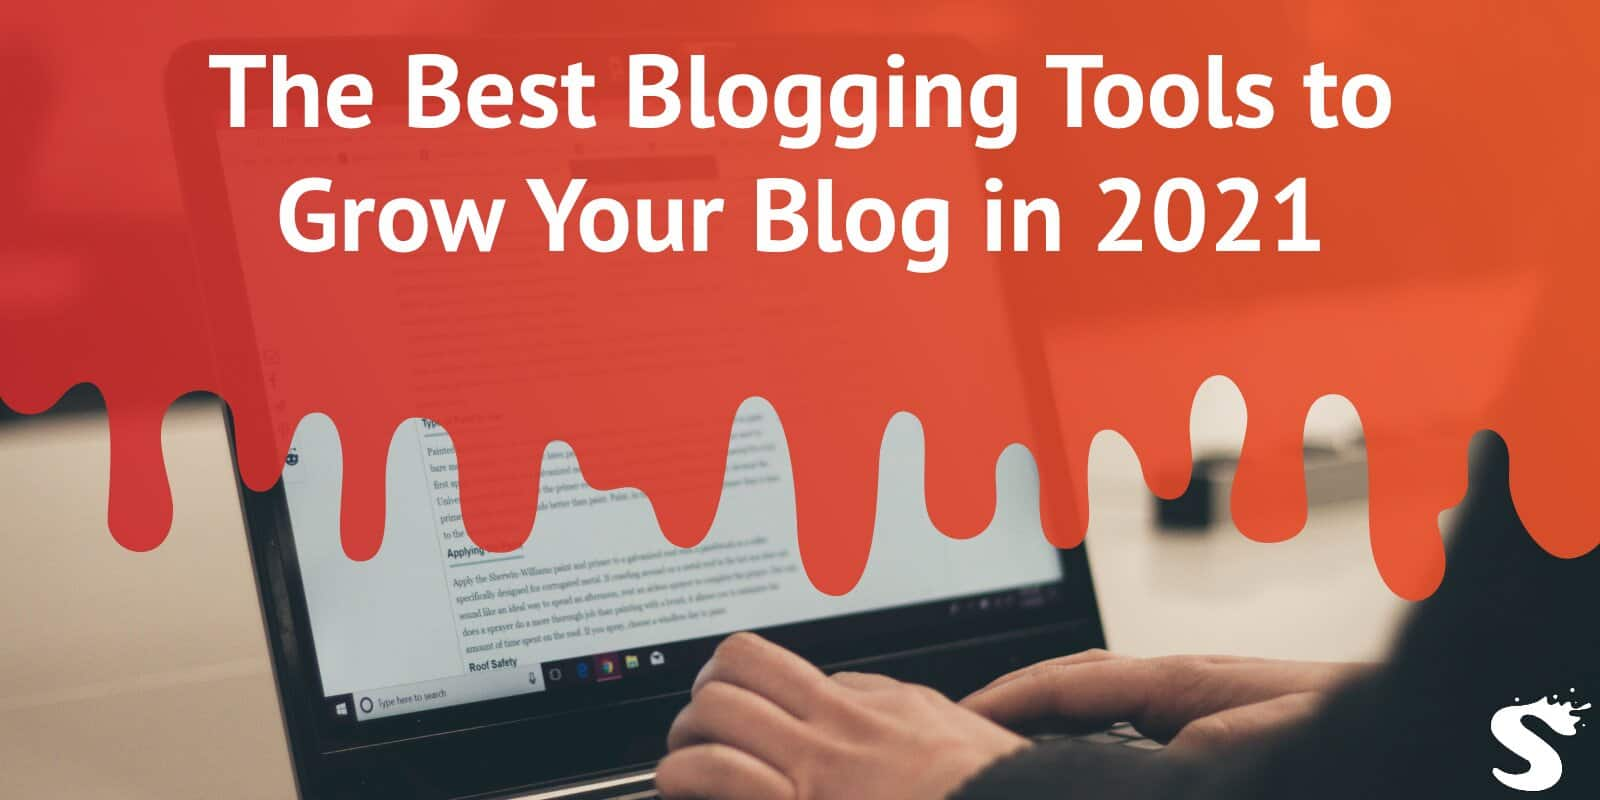 The Best Blogging Tools to Grow Your Blog in 2021